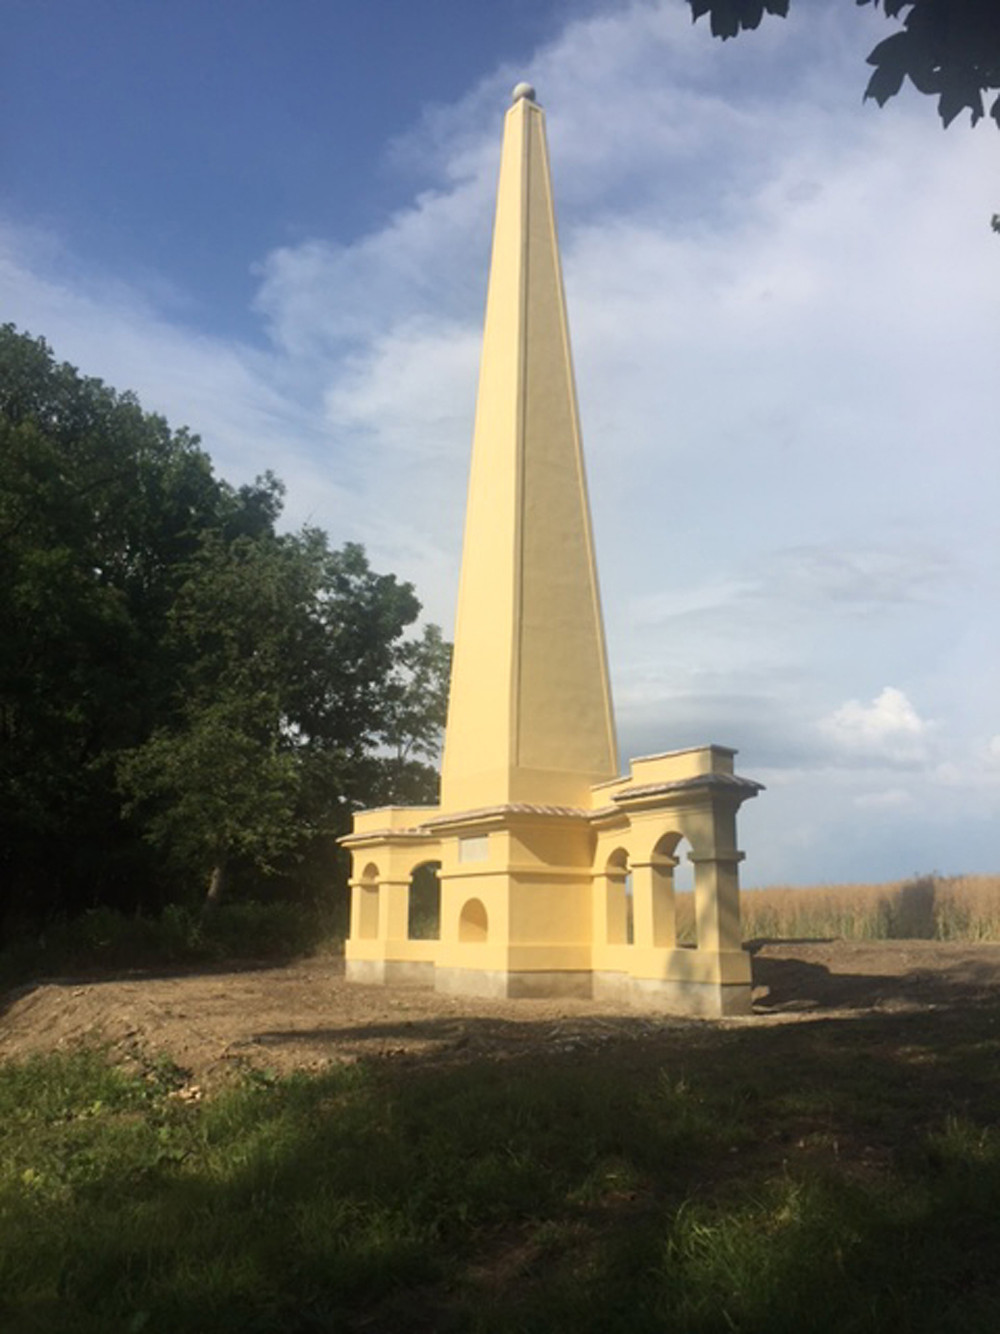 The restored obelisk in the park of the Château of Uherčice, a project of The Friends. Image © Ian Kennaway